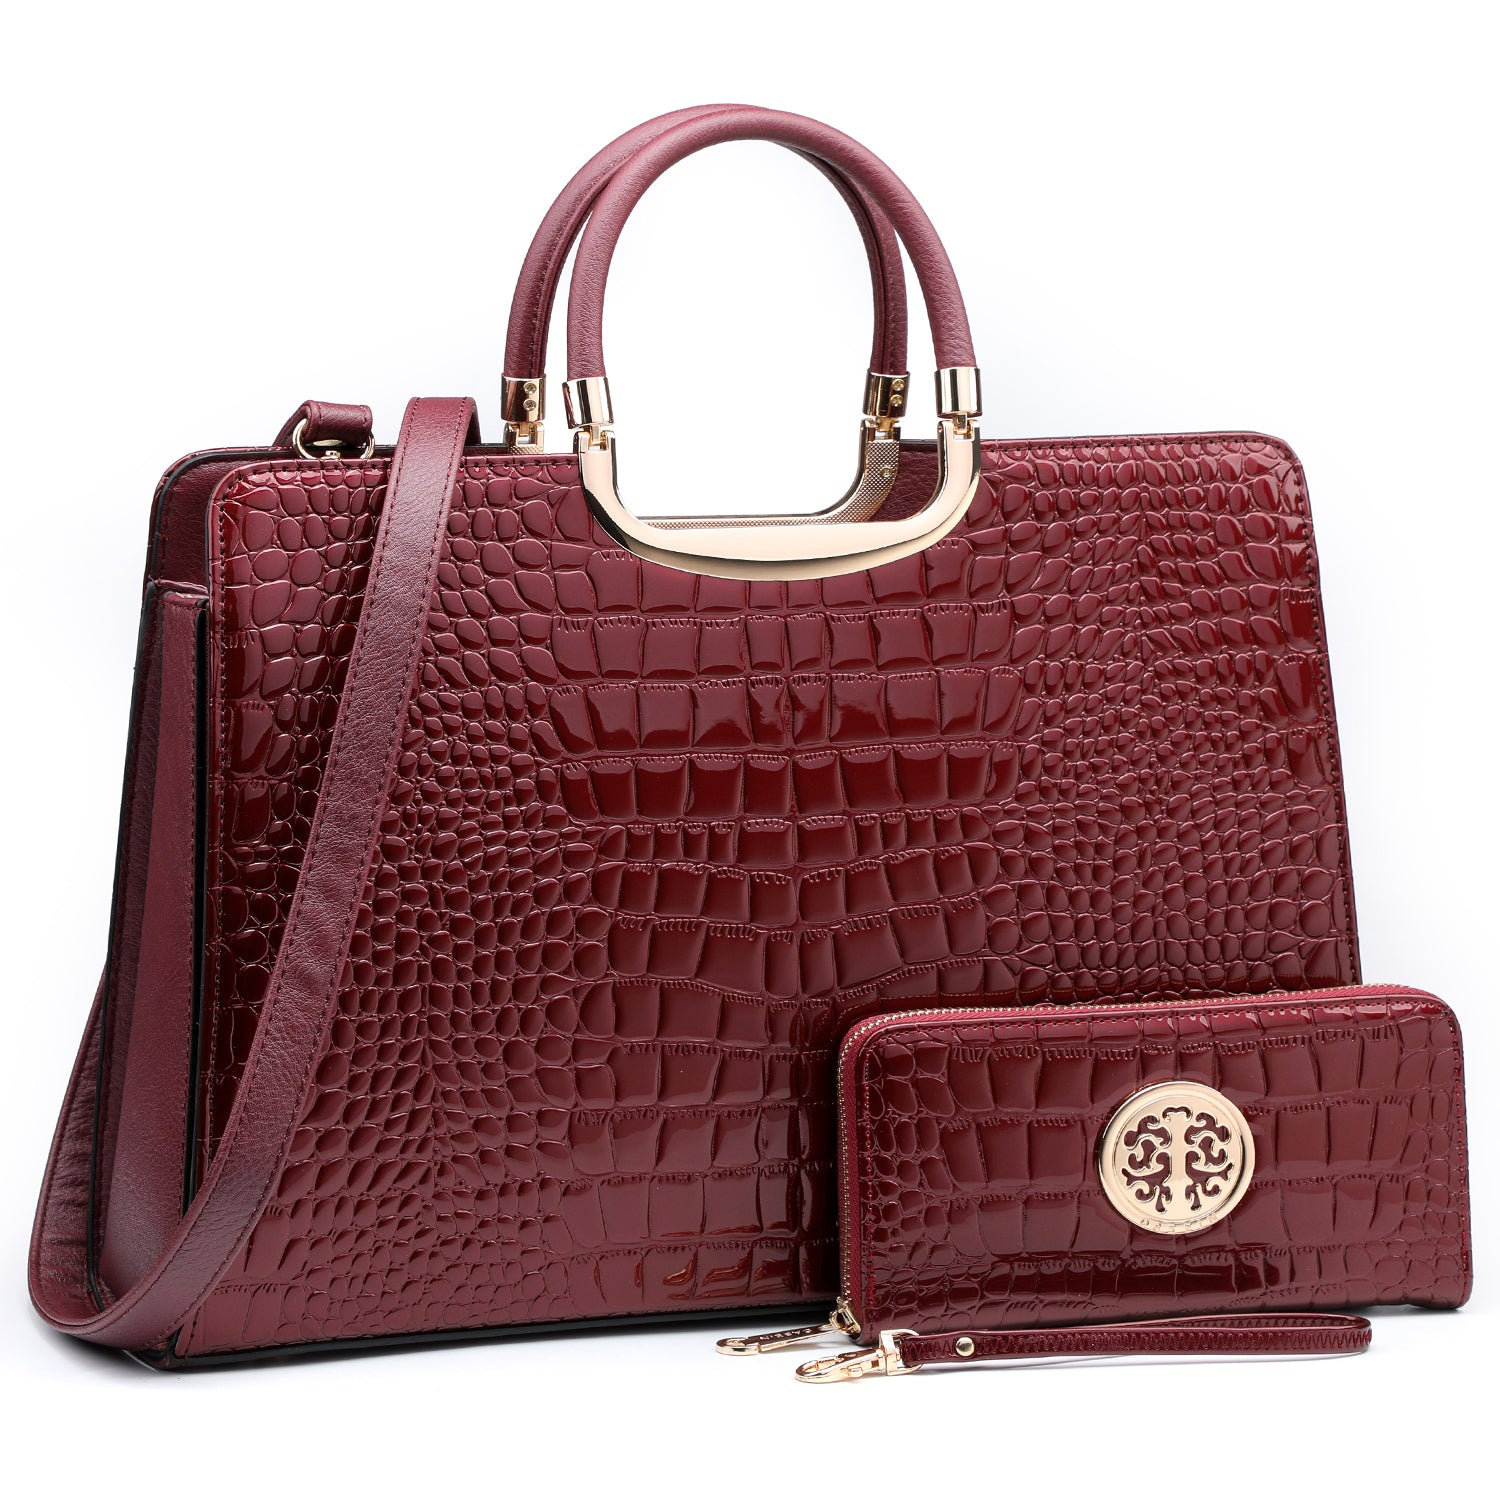 Croco Embossed Handbag with Matching Wallet